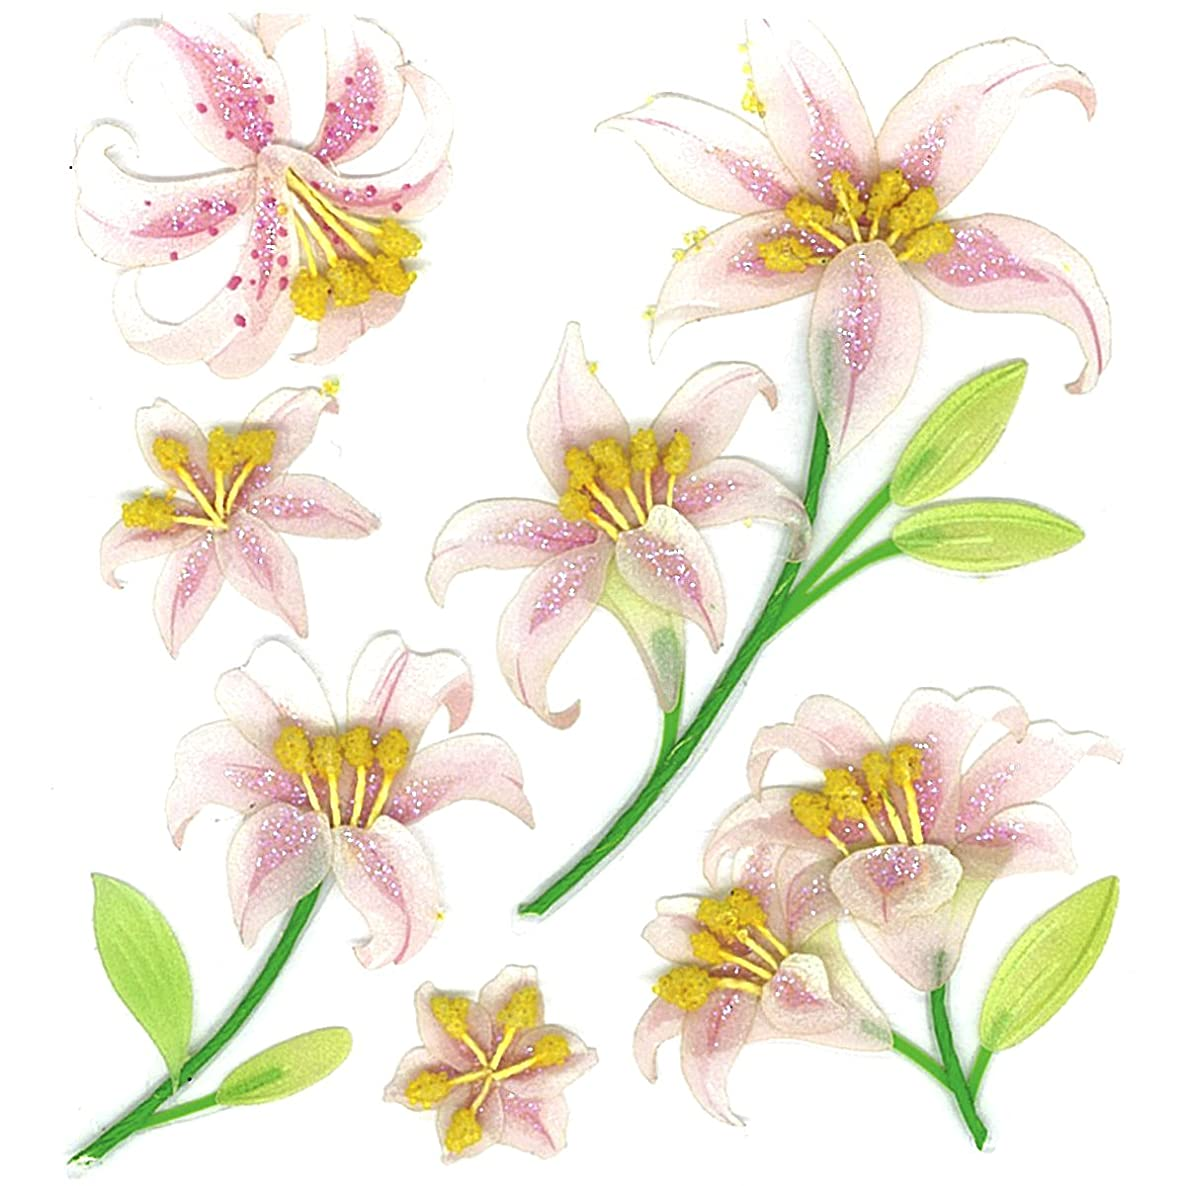 Jolee's Boutique Beautiful Lilies Dimensional Stickers